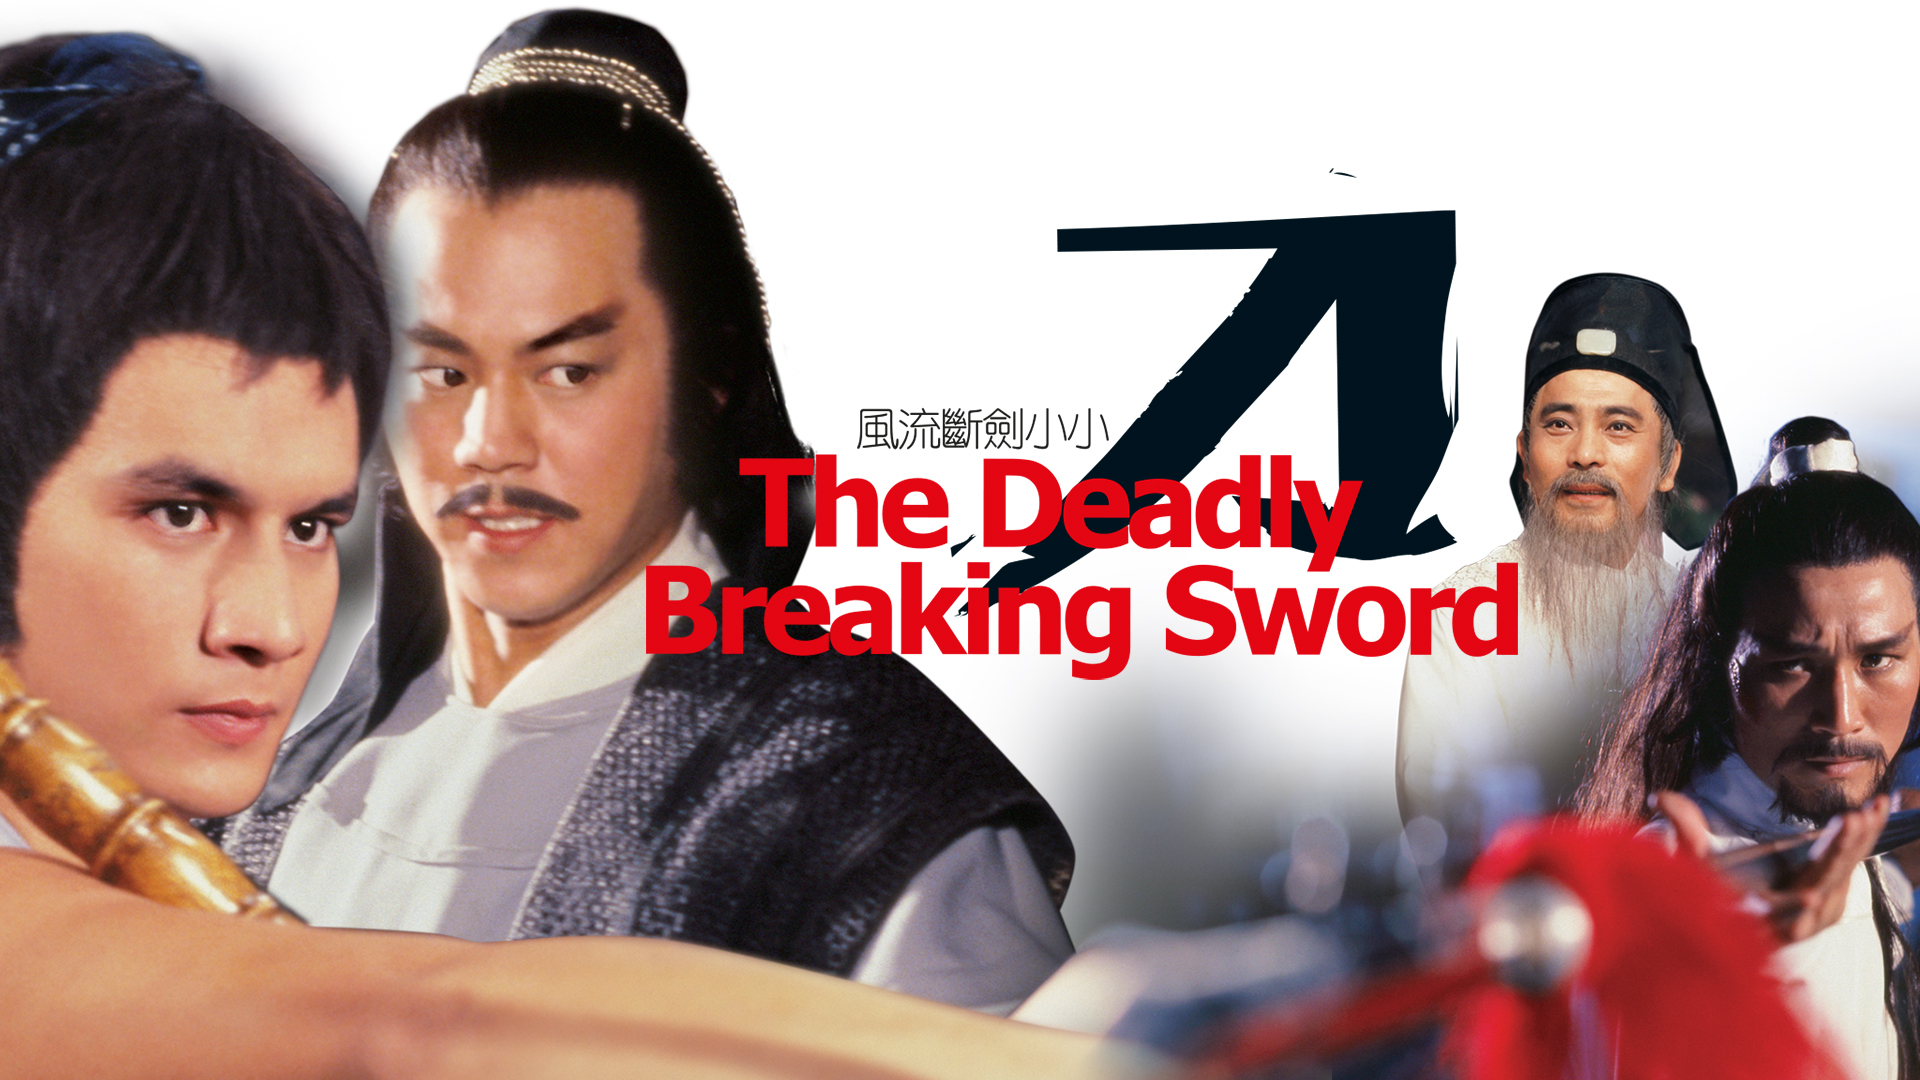 The Deadly Breaking Sword